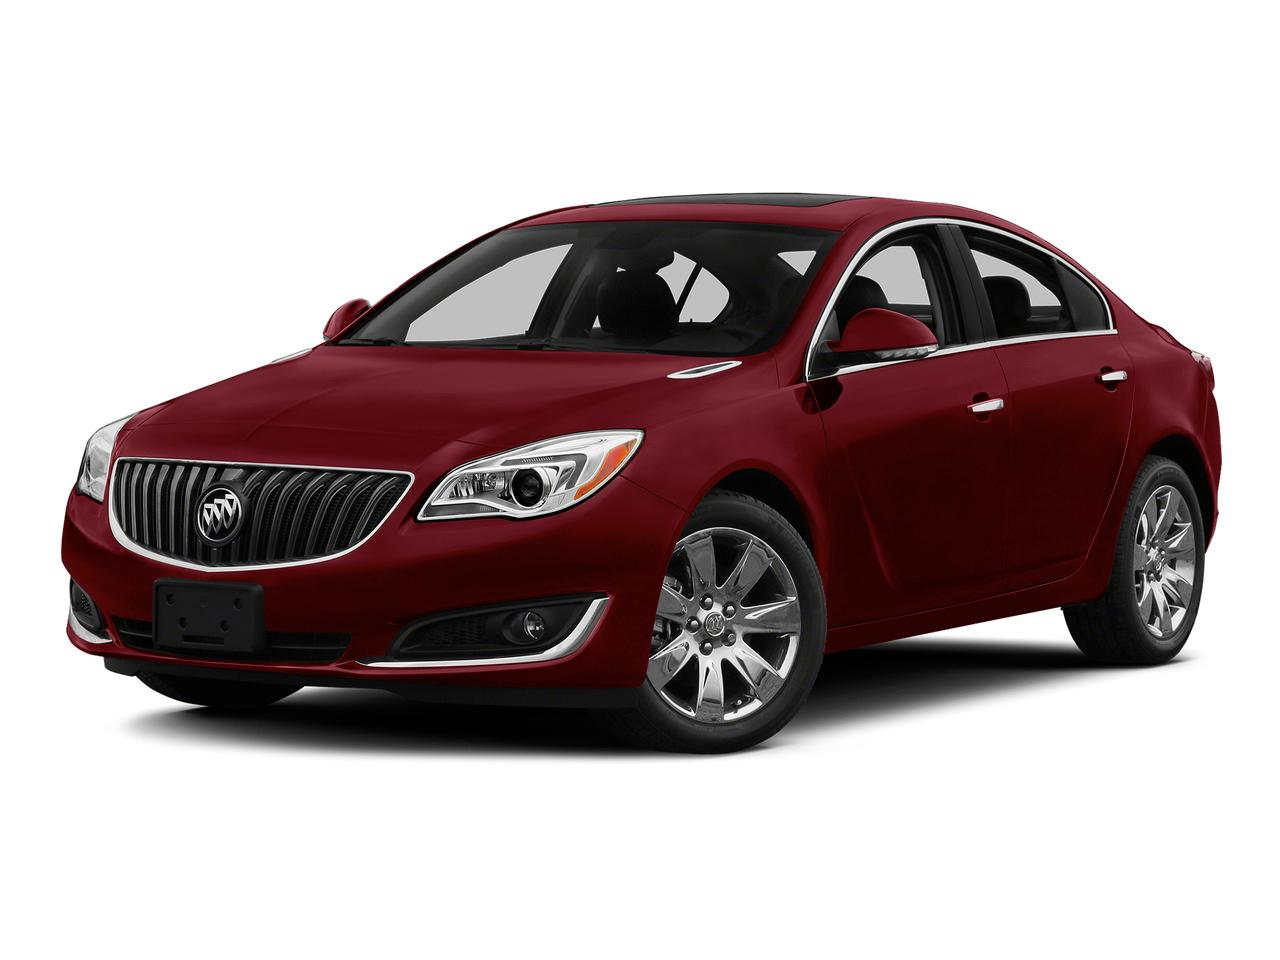 2015 Buick Regal Vehicle Photo in Medina, OH 44256